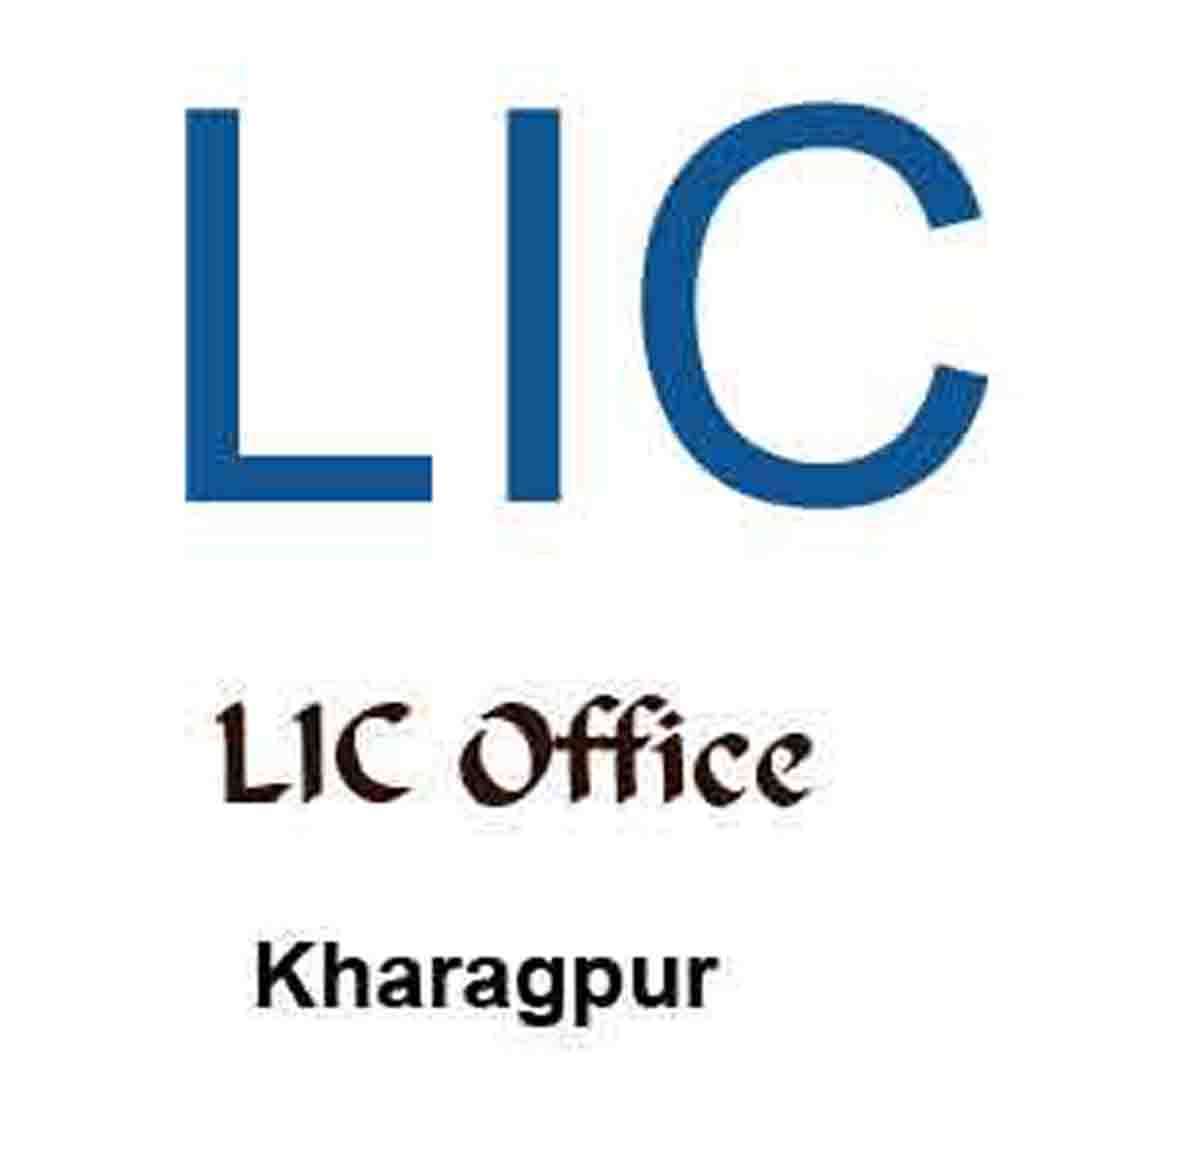 lic office kharagpur